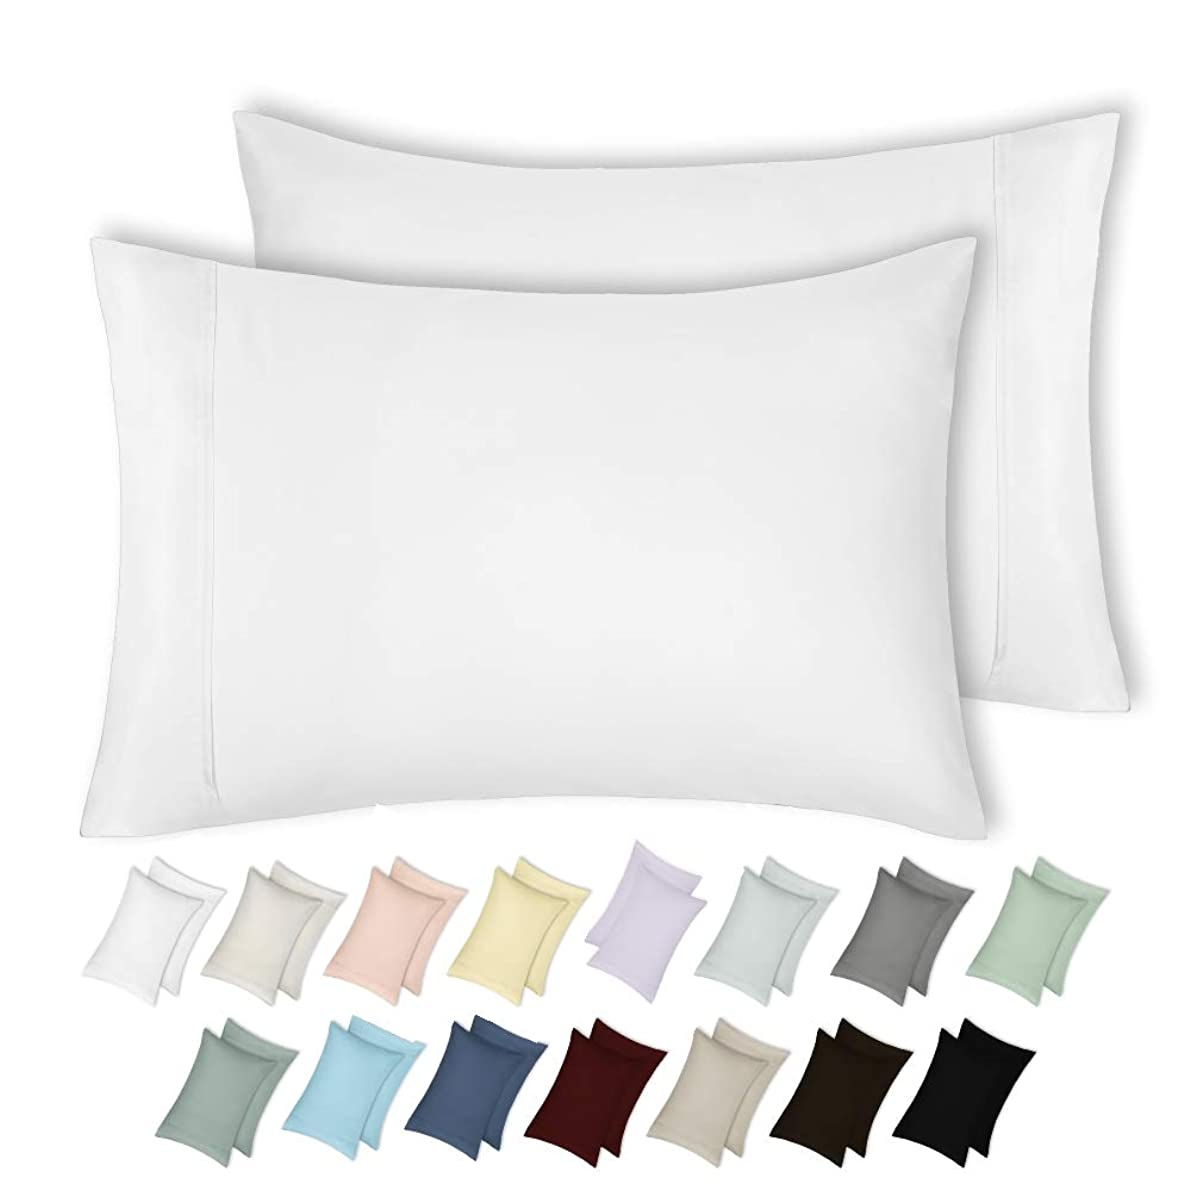 400 Thread Count 100% Cotton Pillow Cases, Pure White Standard Pillowcase Set of 2, Long-Staple Combed Pure Natural Cotton Pillows for Sleeping, Soft & Silky Sateen Weave Bed Pillow Covers qemsvmk72